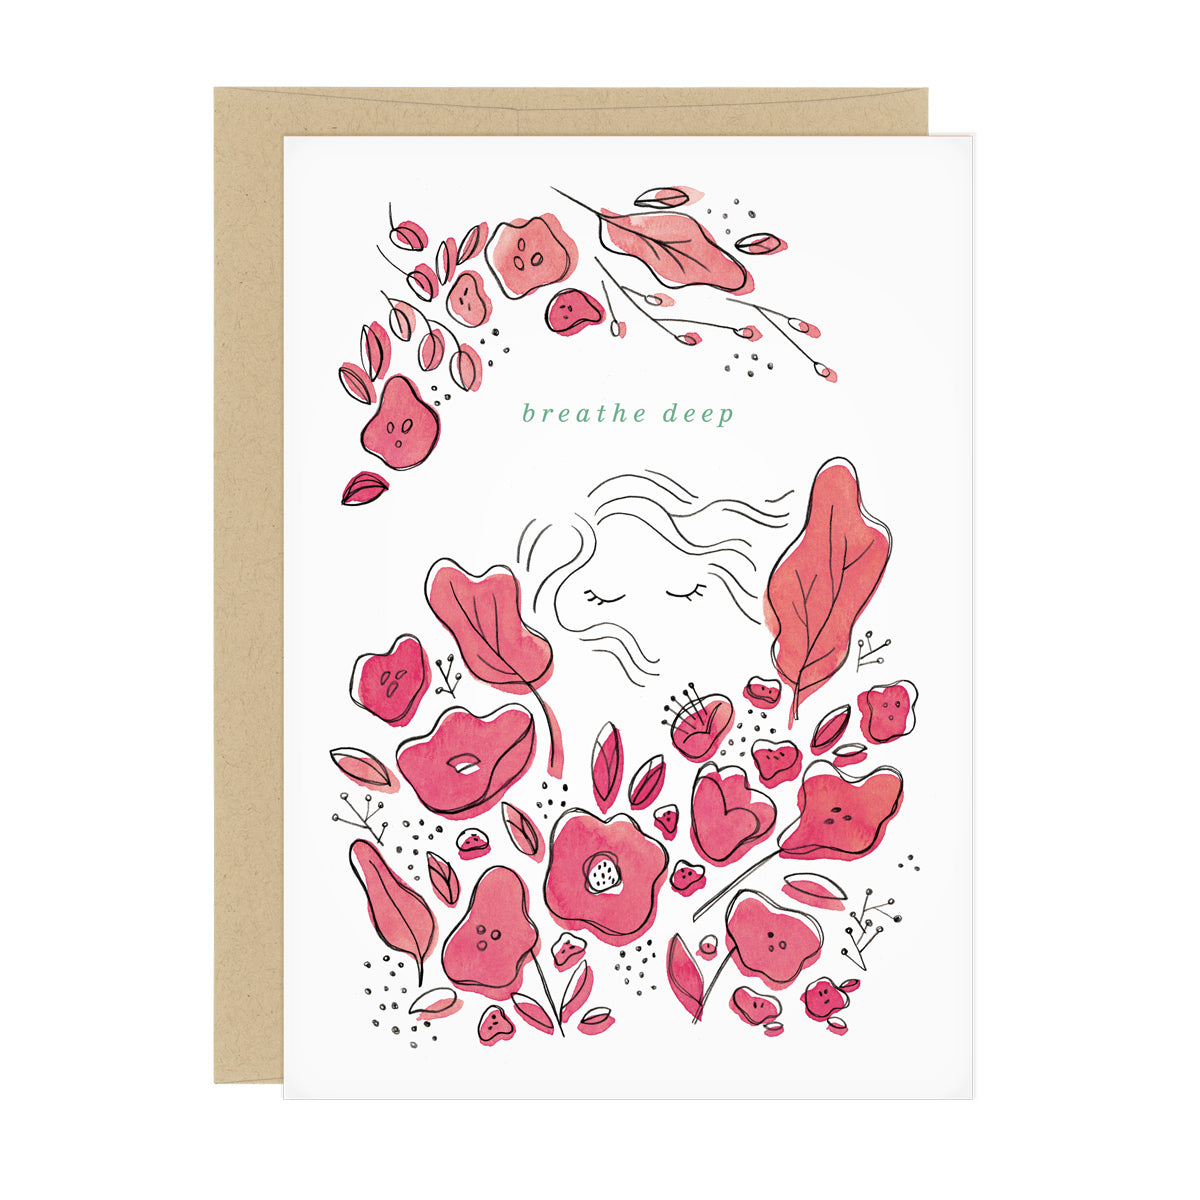 "Illustrations of decorative pink flowers surround a line drawing of a face of a woman with her eye closed. Text reads ""breathe deep"""